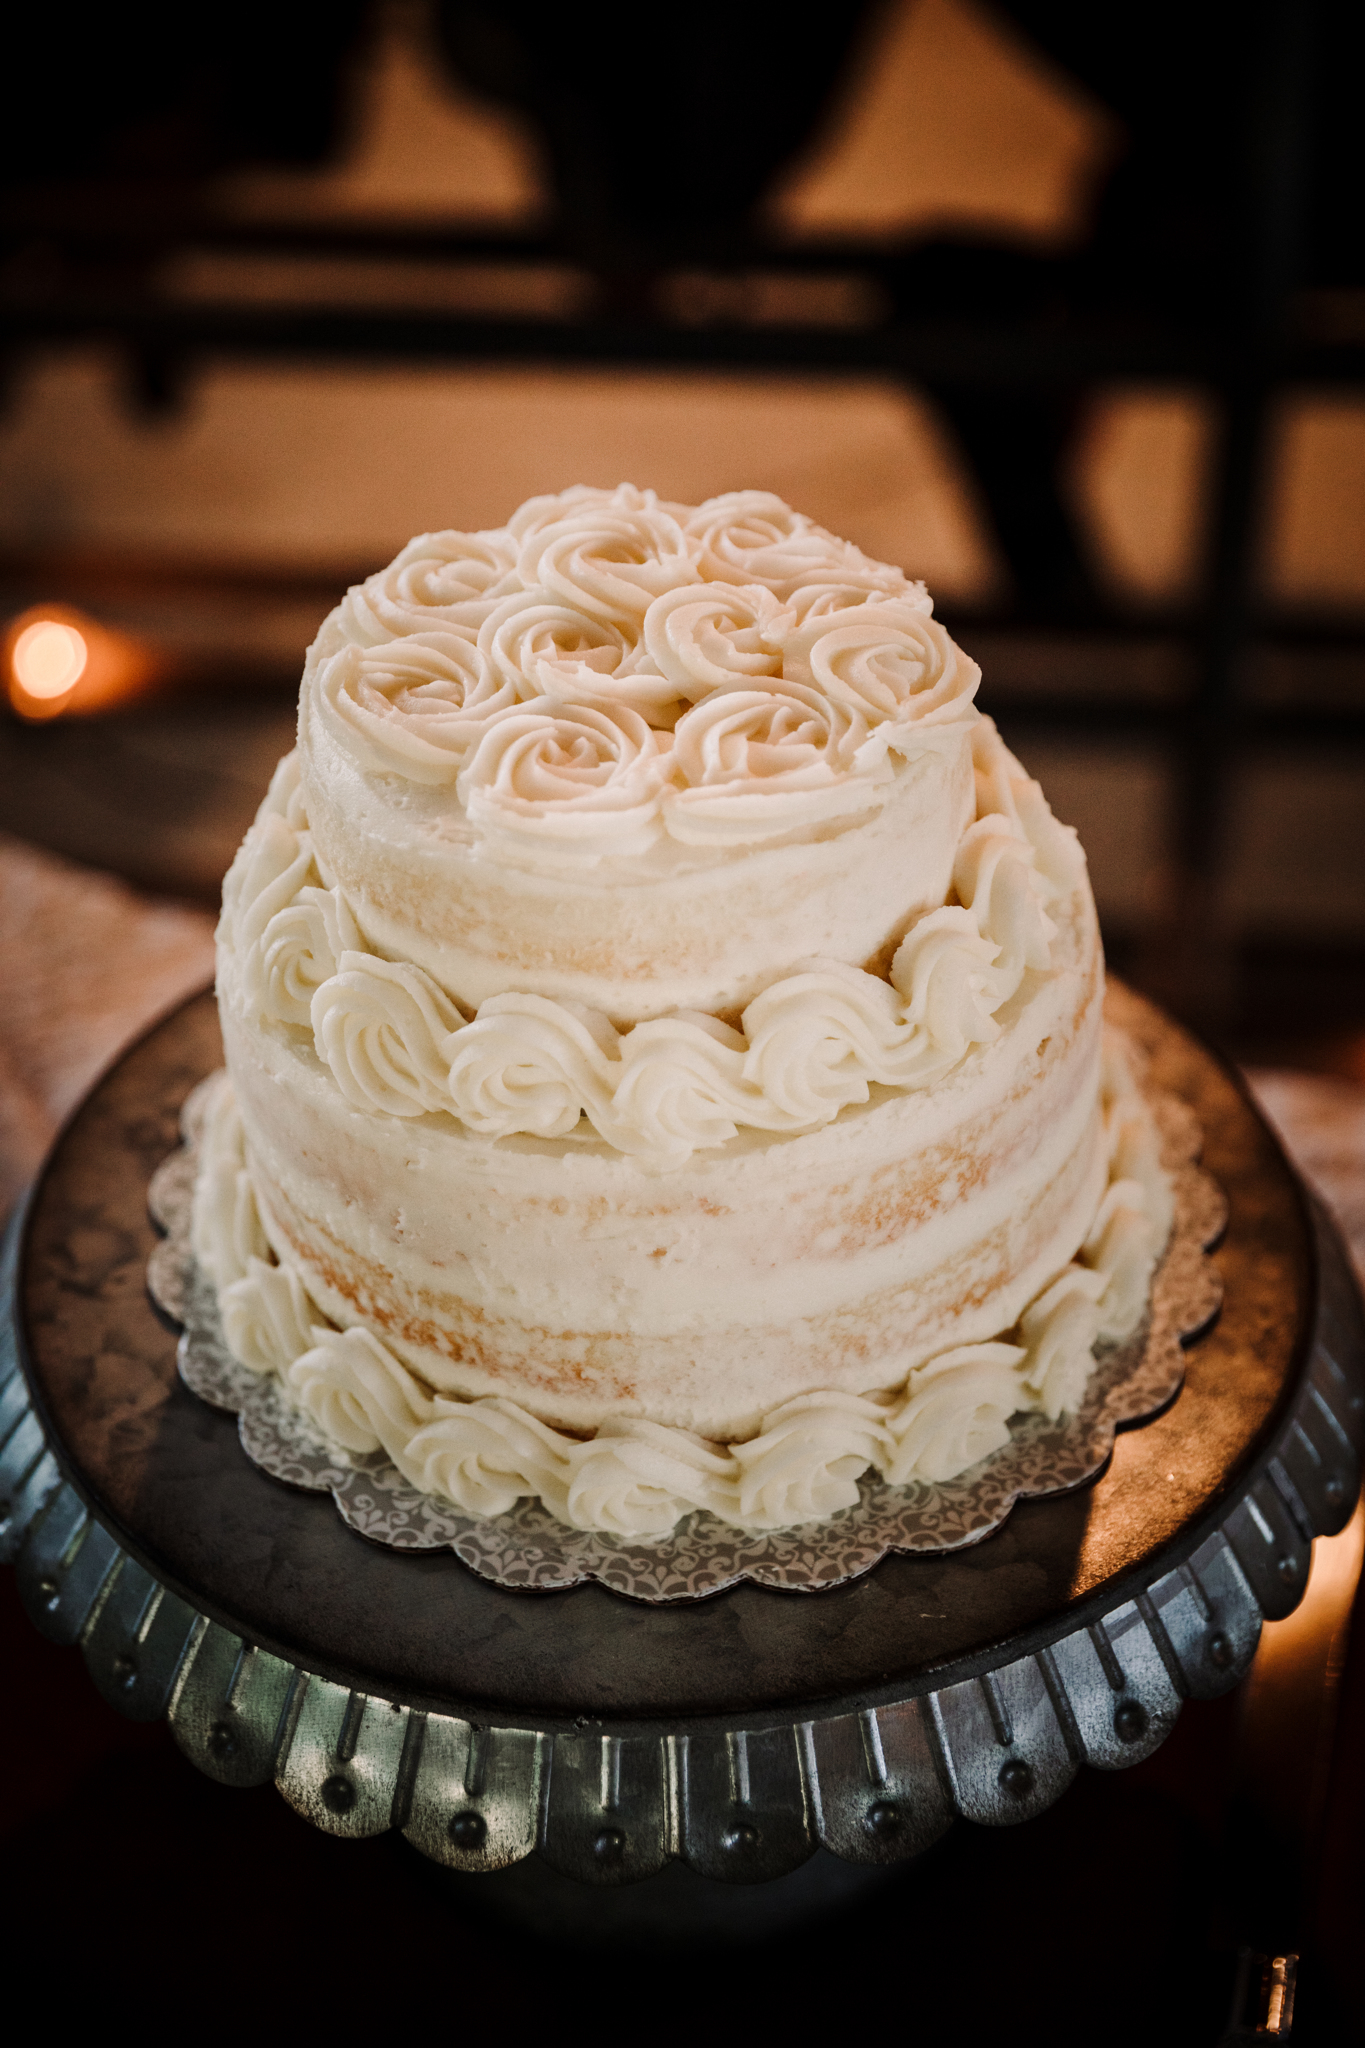 Simple Rustic Wedding Cake: Billie-Shaye Style Wedding Photography featured on Nashville Bride Guide